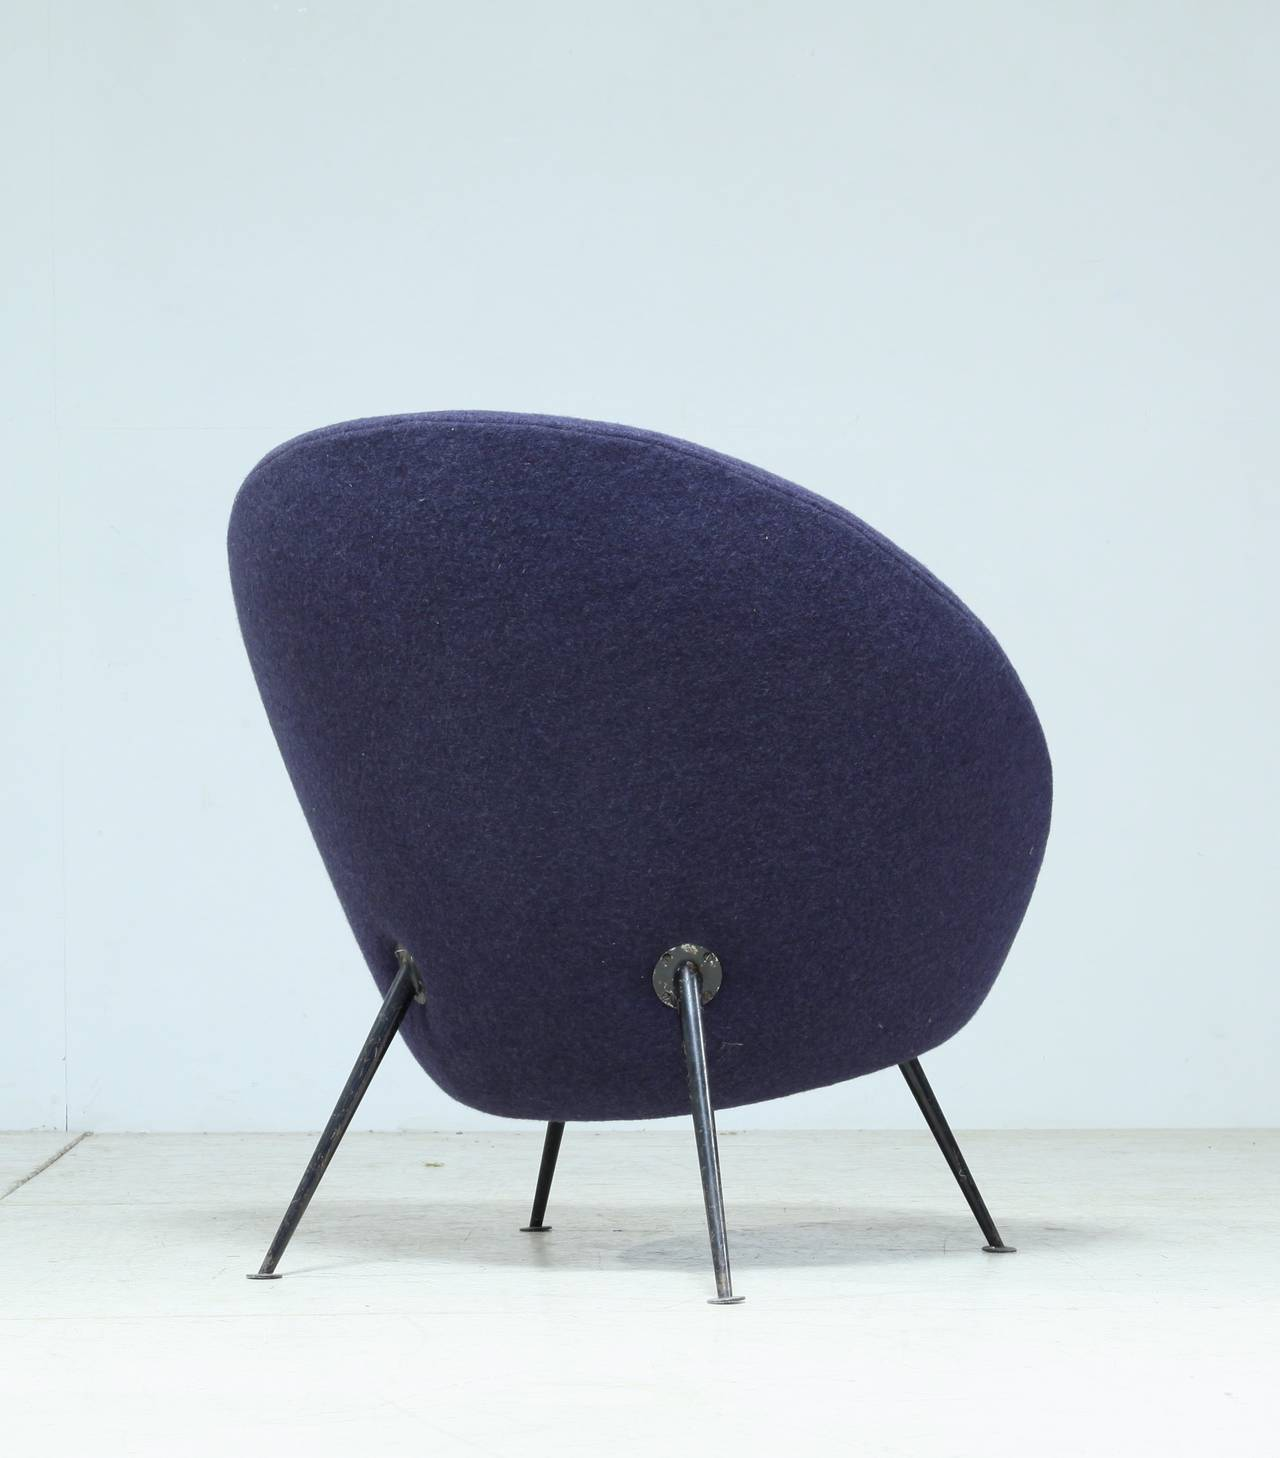 rare ico parisi egg chair model 813 in excellent original upholstery at 1stdibs. Black Bedroom Furniture Sets. Home Design Ideas